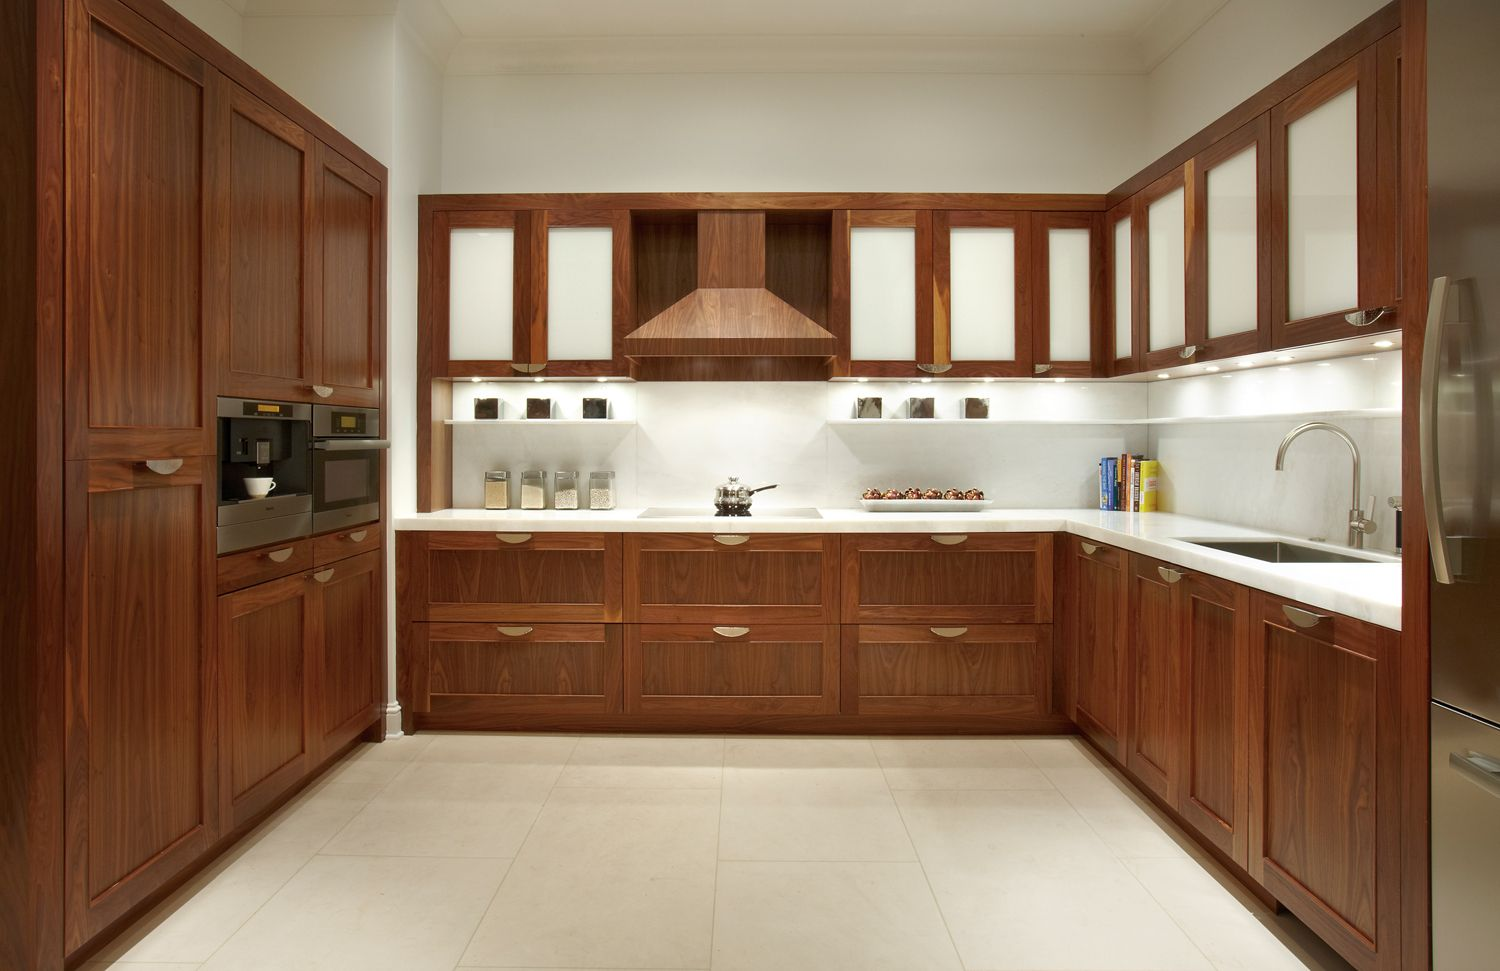 This Contemporary Kitchen Is Made Up Of Clean Lines And Simple Details Th Custom Kitchen Cabinets Design Walnut Kitchen Cabinets Contemporary Kitchen Cabinets